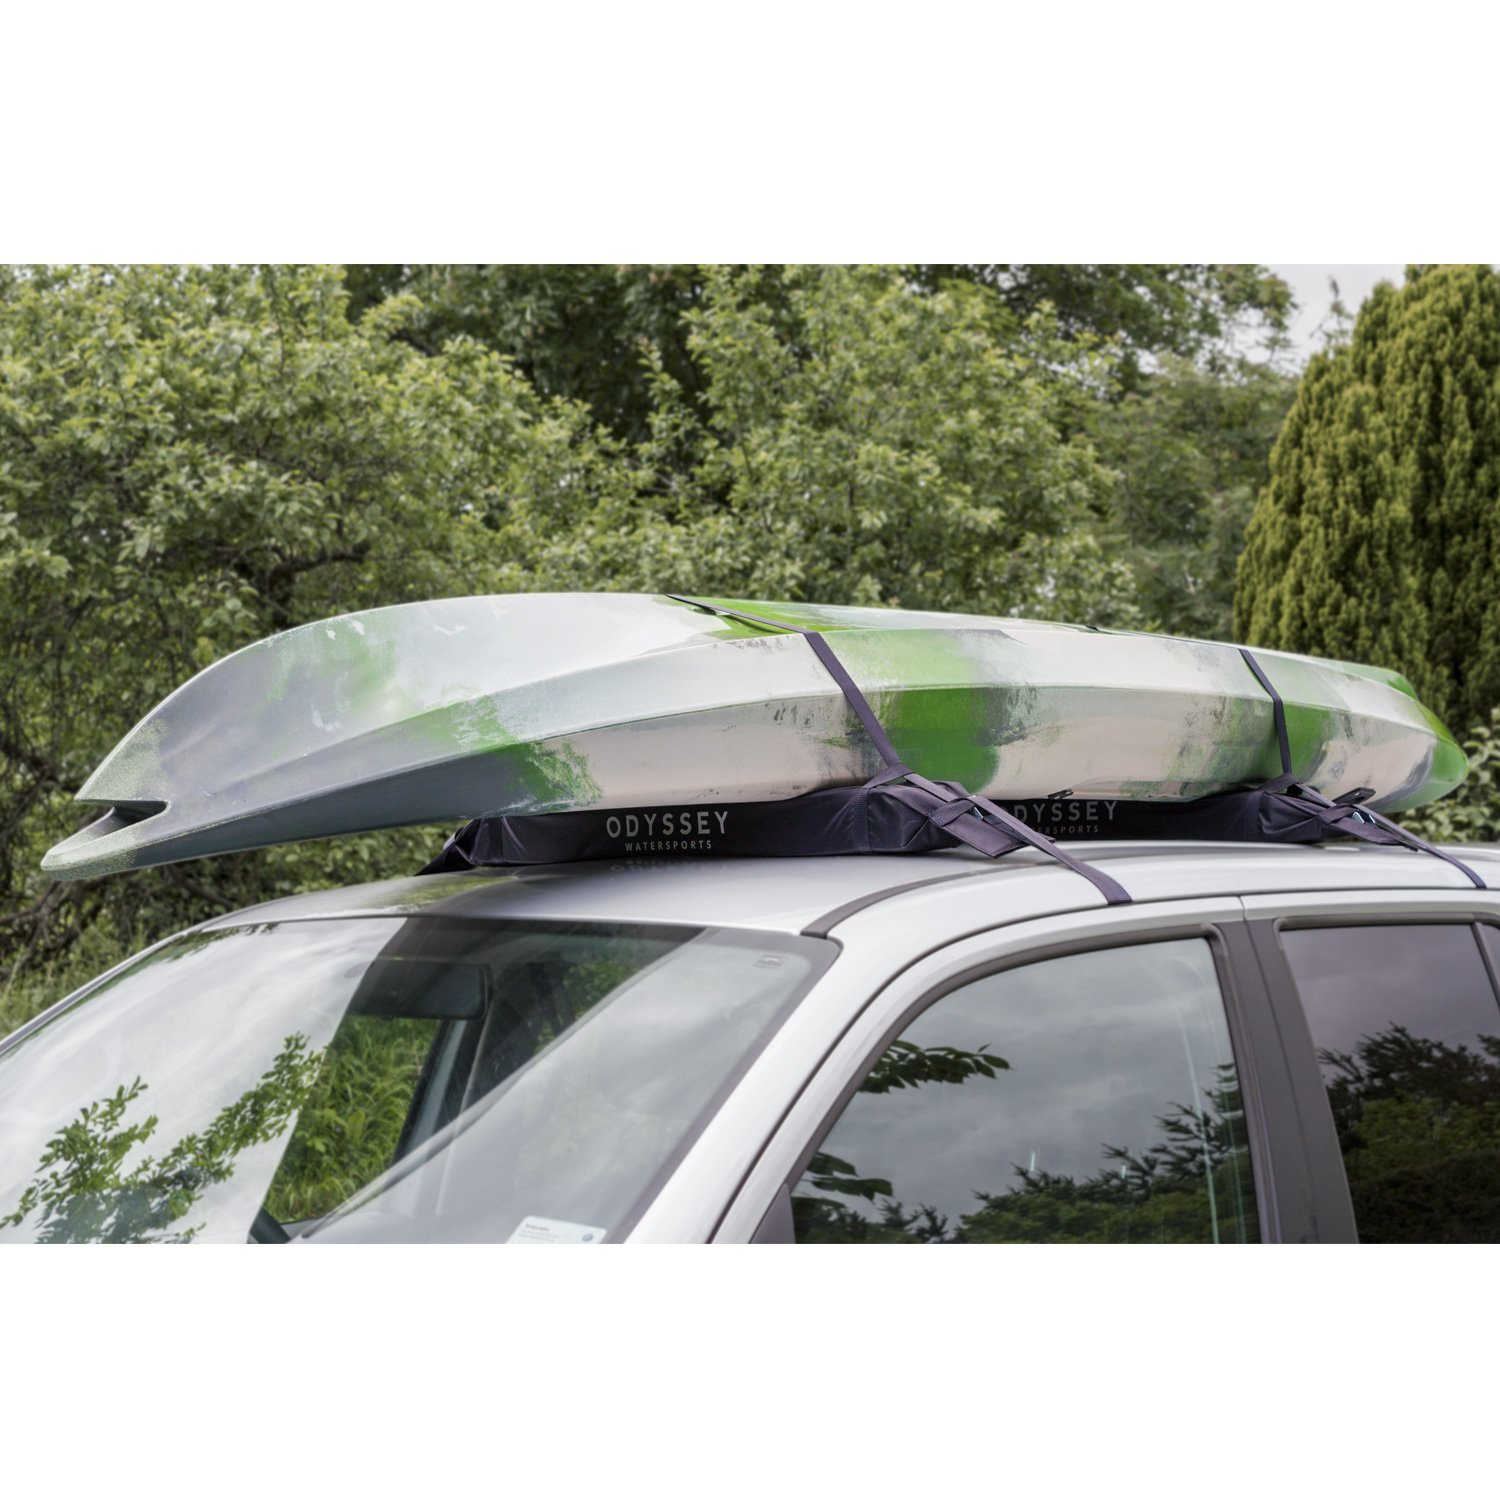 Odyssey Soft Roof Rack Pads Amazon Sports & Outdoors